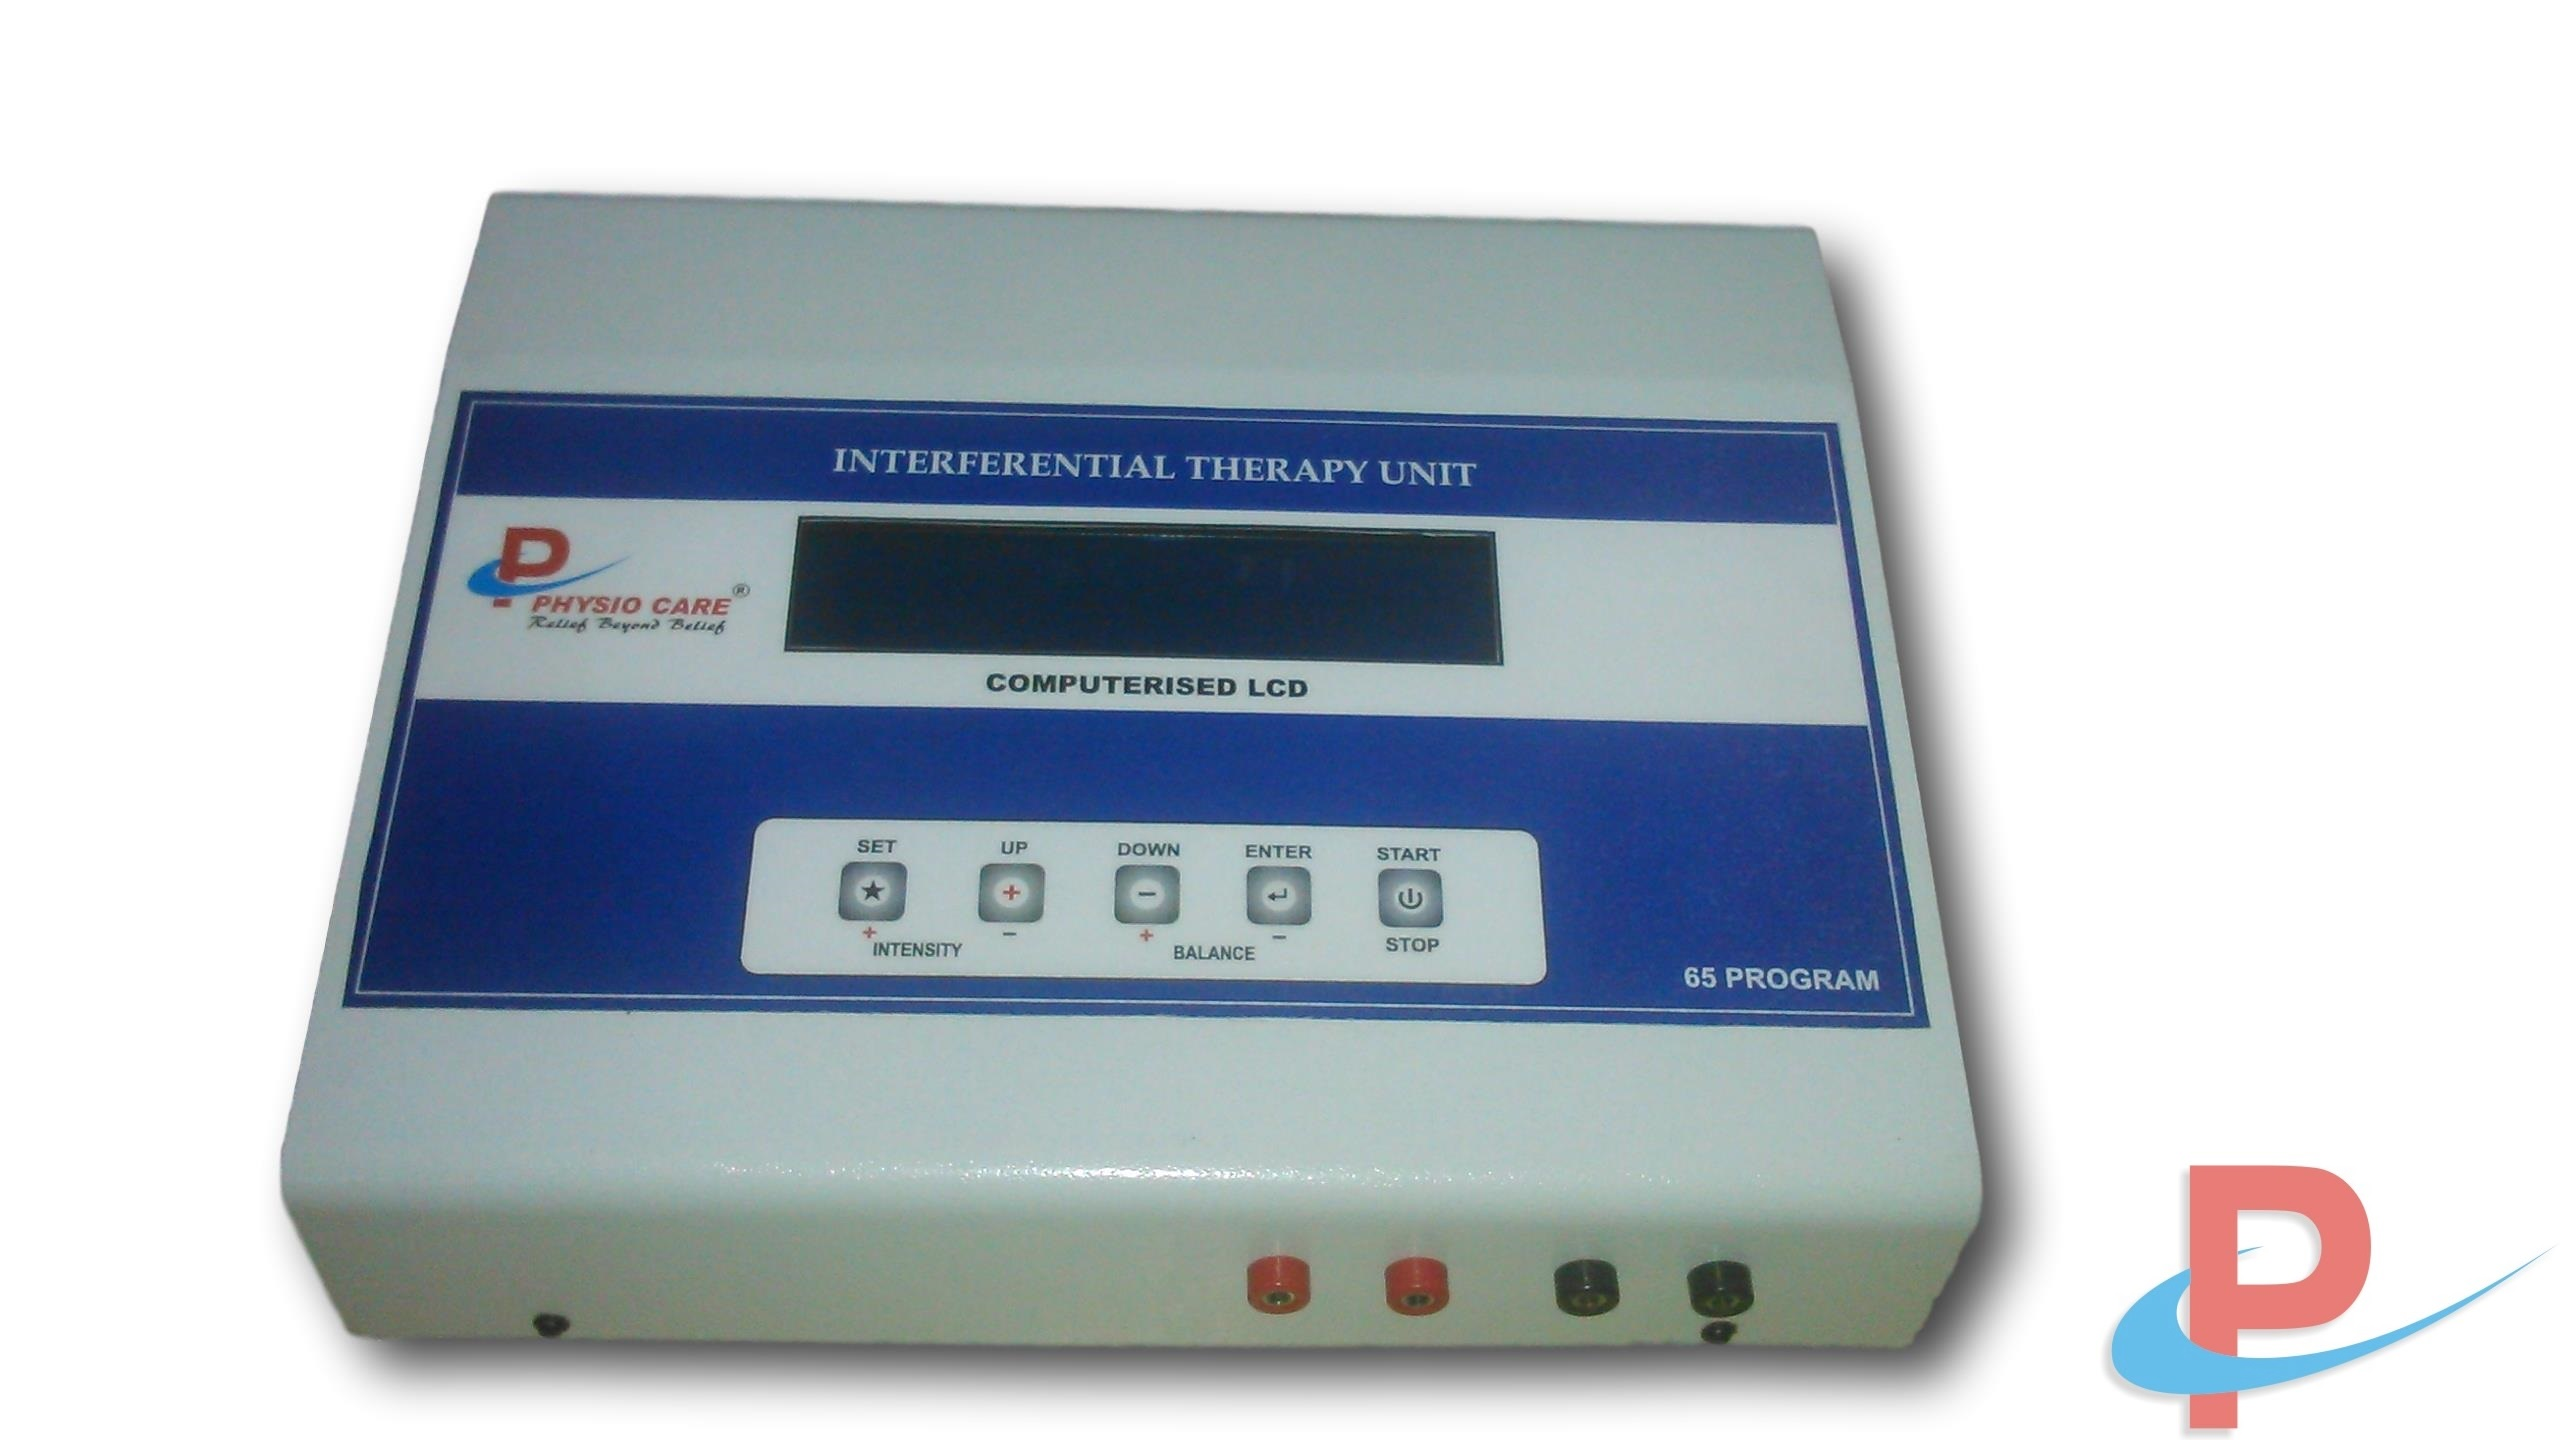 Interferential Therapy LCD